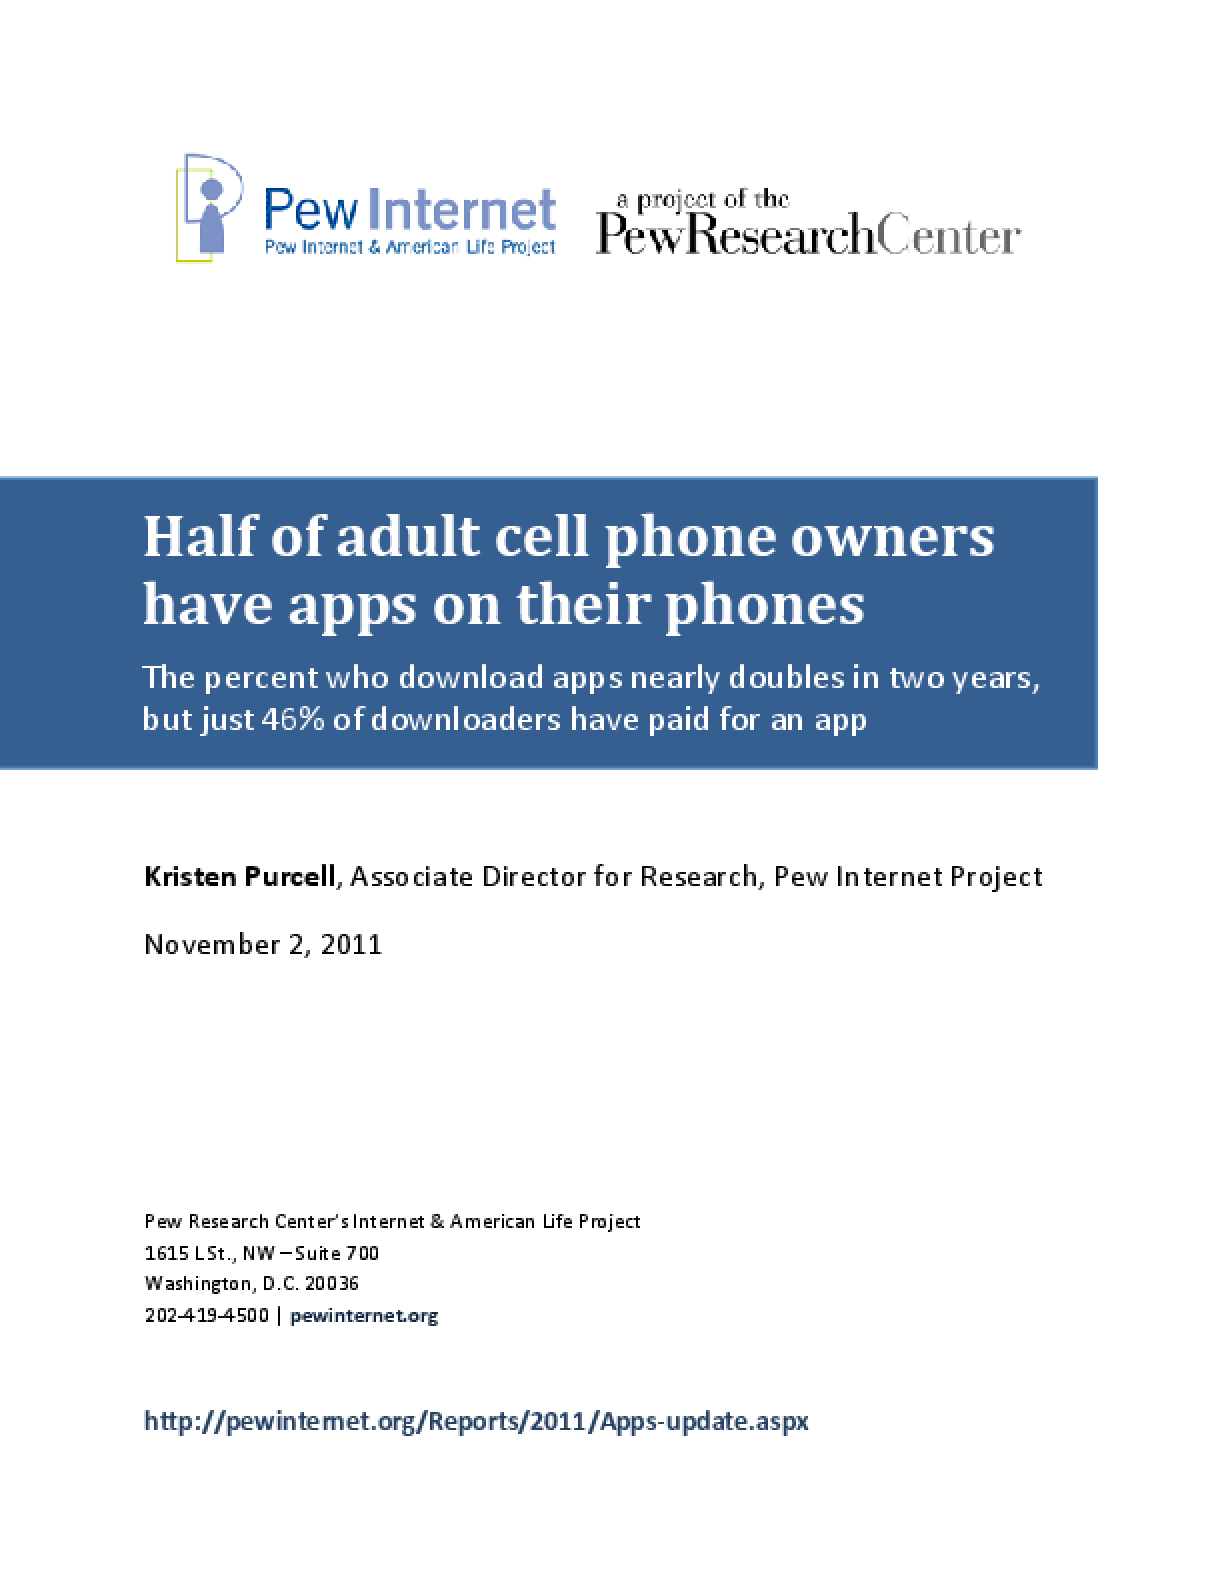 Half of Adult Cell Phone Owners Have Apps on Their Phones